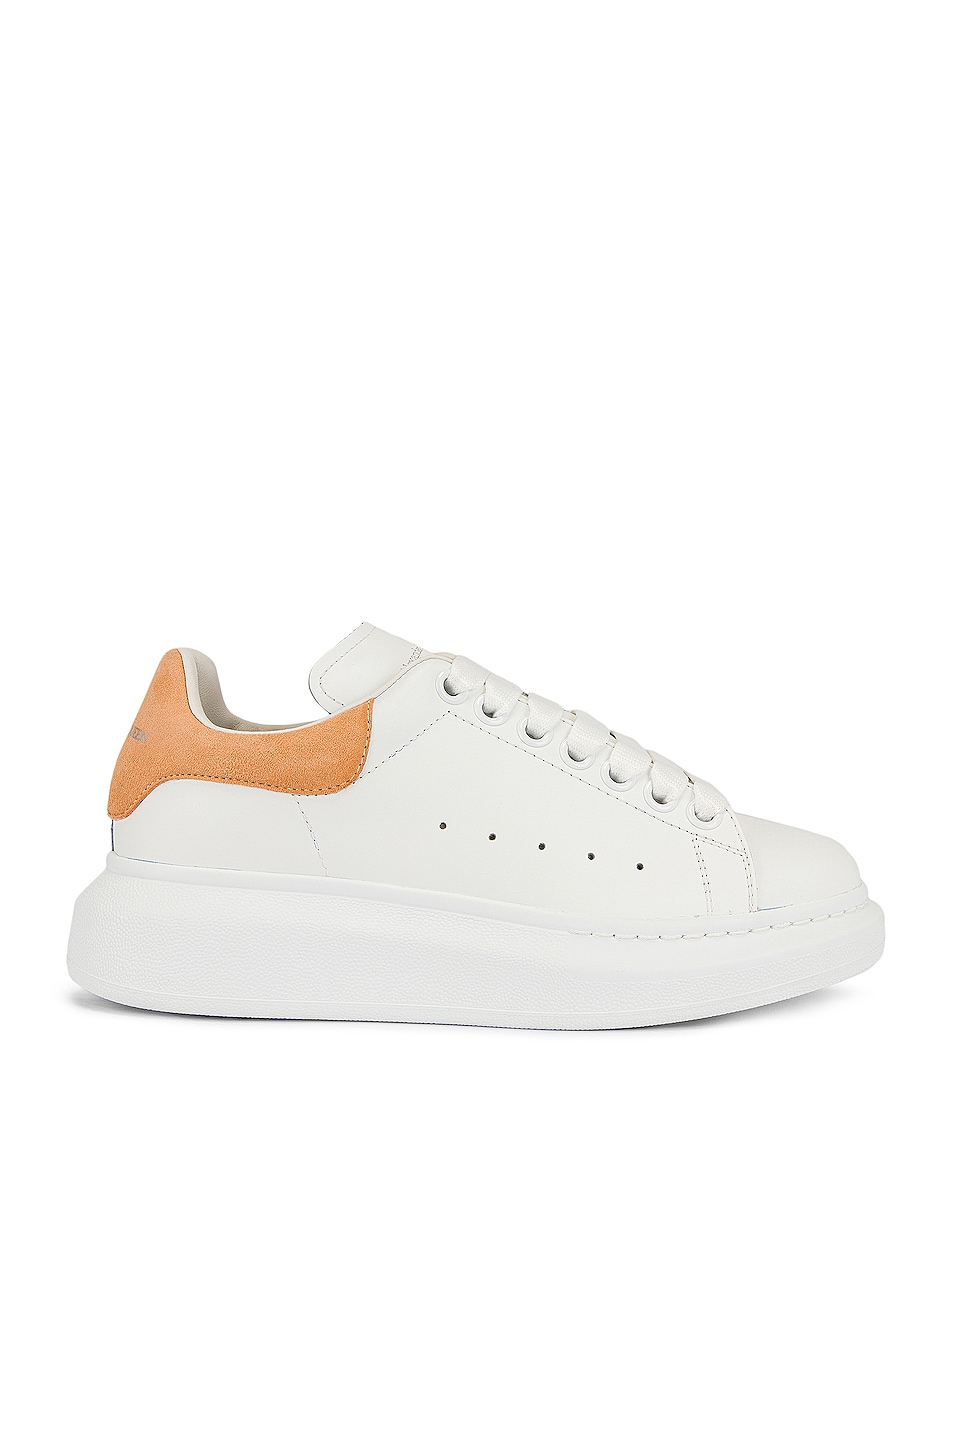 Image 1 of Alexander McQueen Leather & Rubber Sneakers in White & Shell